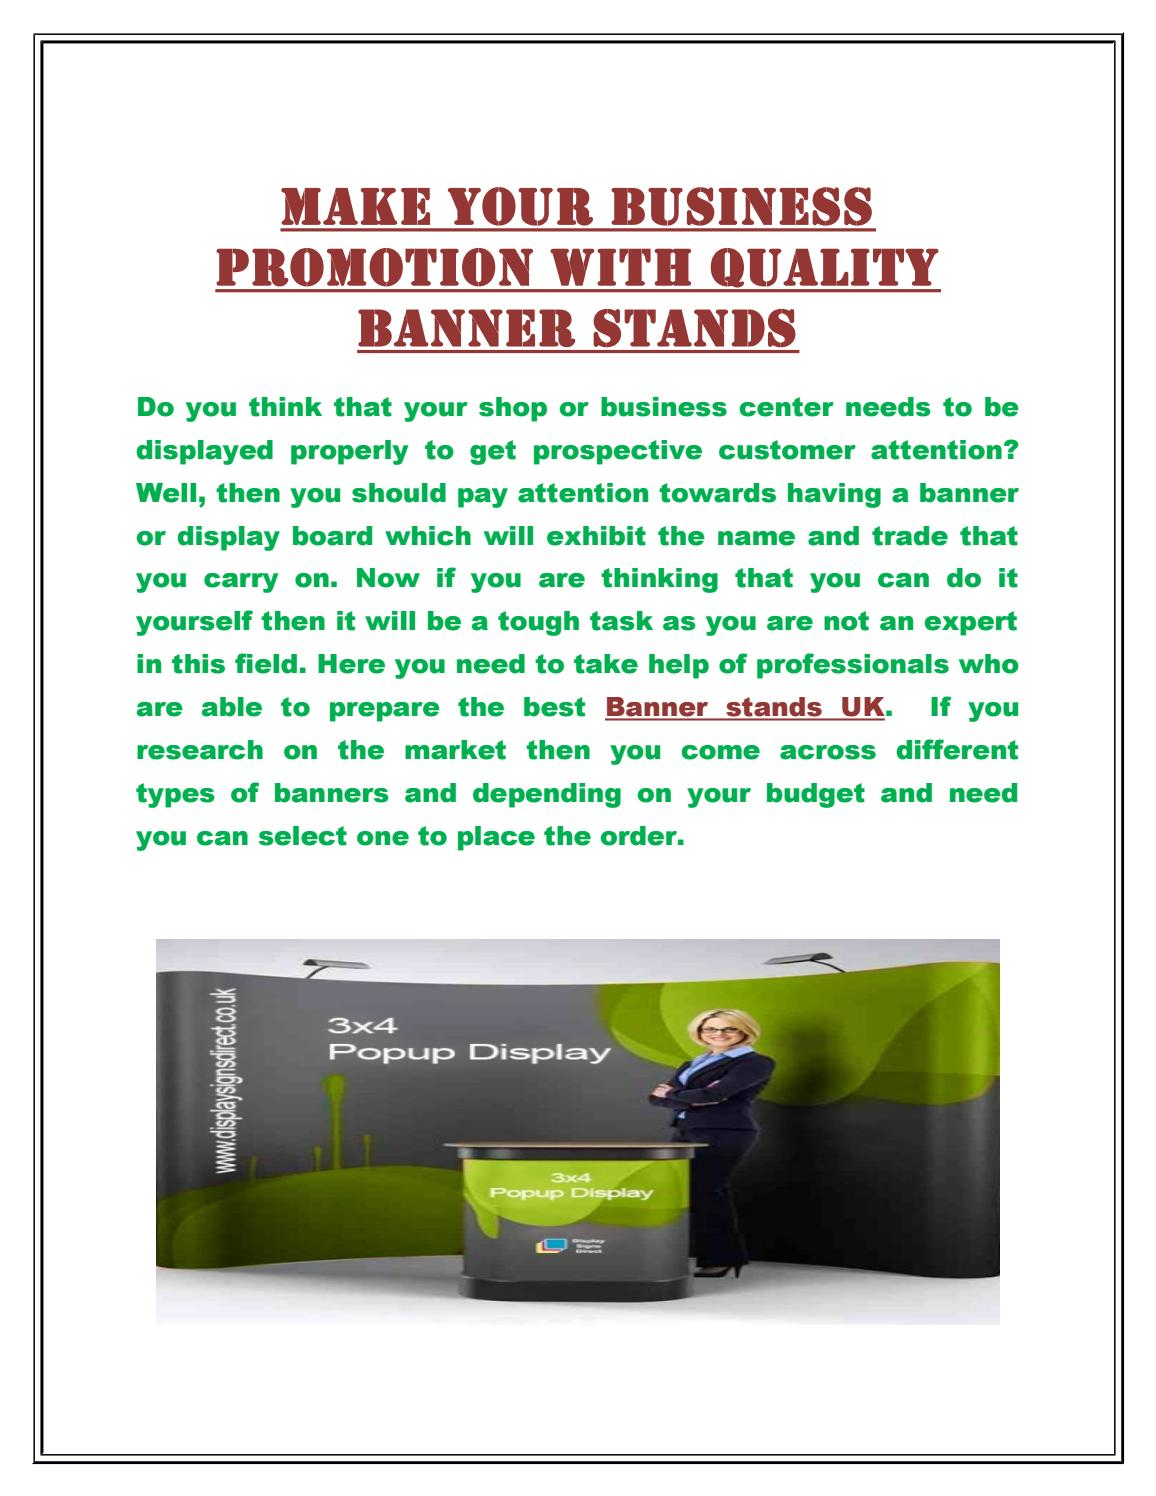 make your business promotion with quality banner stands by display